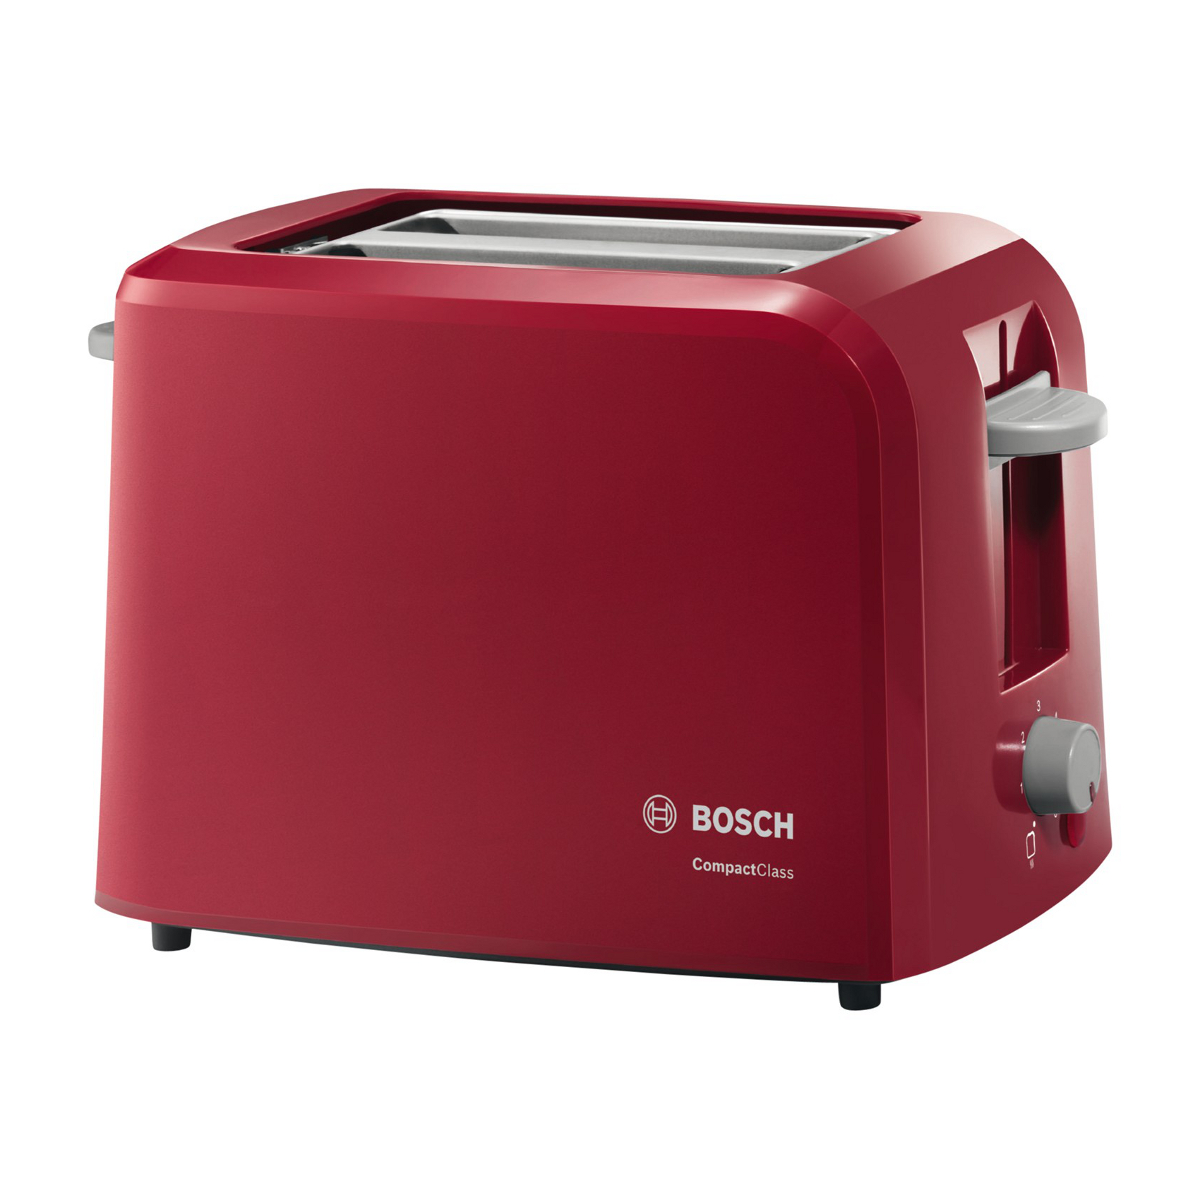 toaster price compare kitchenaid 5akmt223ac toaster prices in australia enviro ta1018. Black Bedroom Furniture Sets. Home Design Ideas